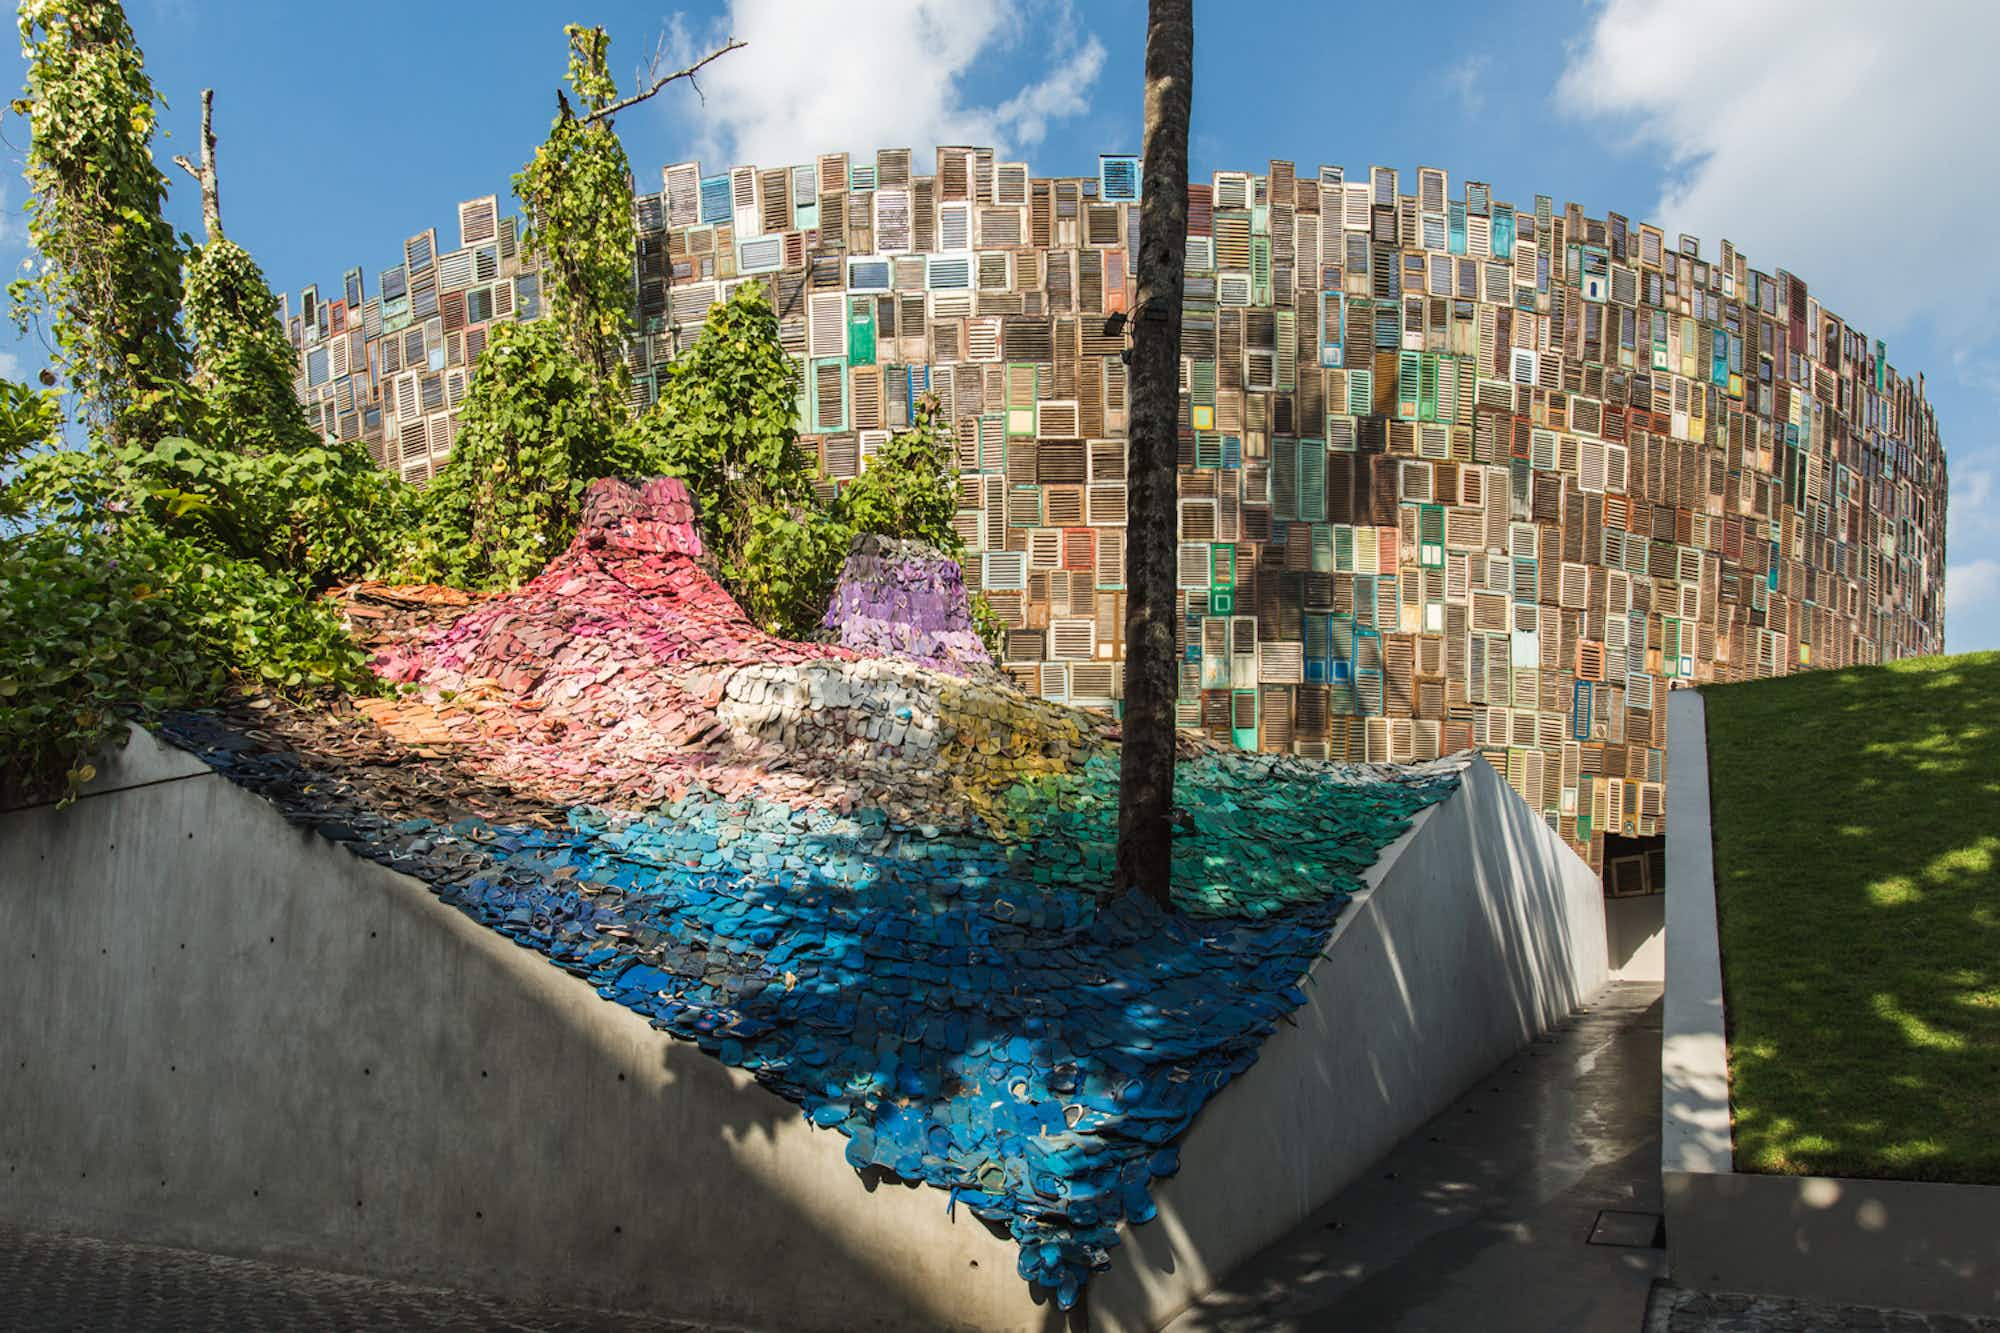 Your lost flip-flops could be part of this new thoughtful art installation in Bali